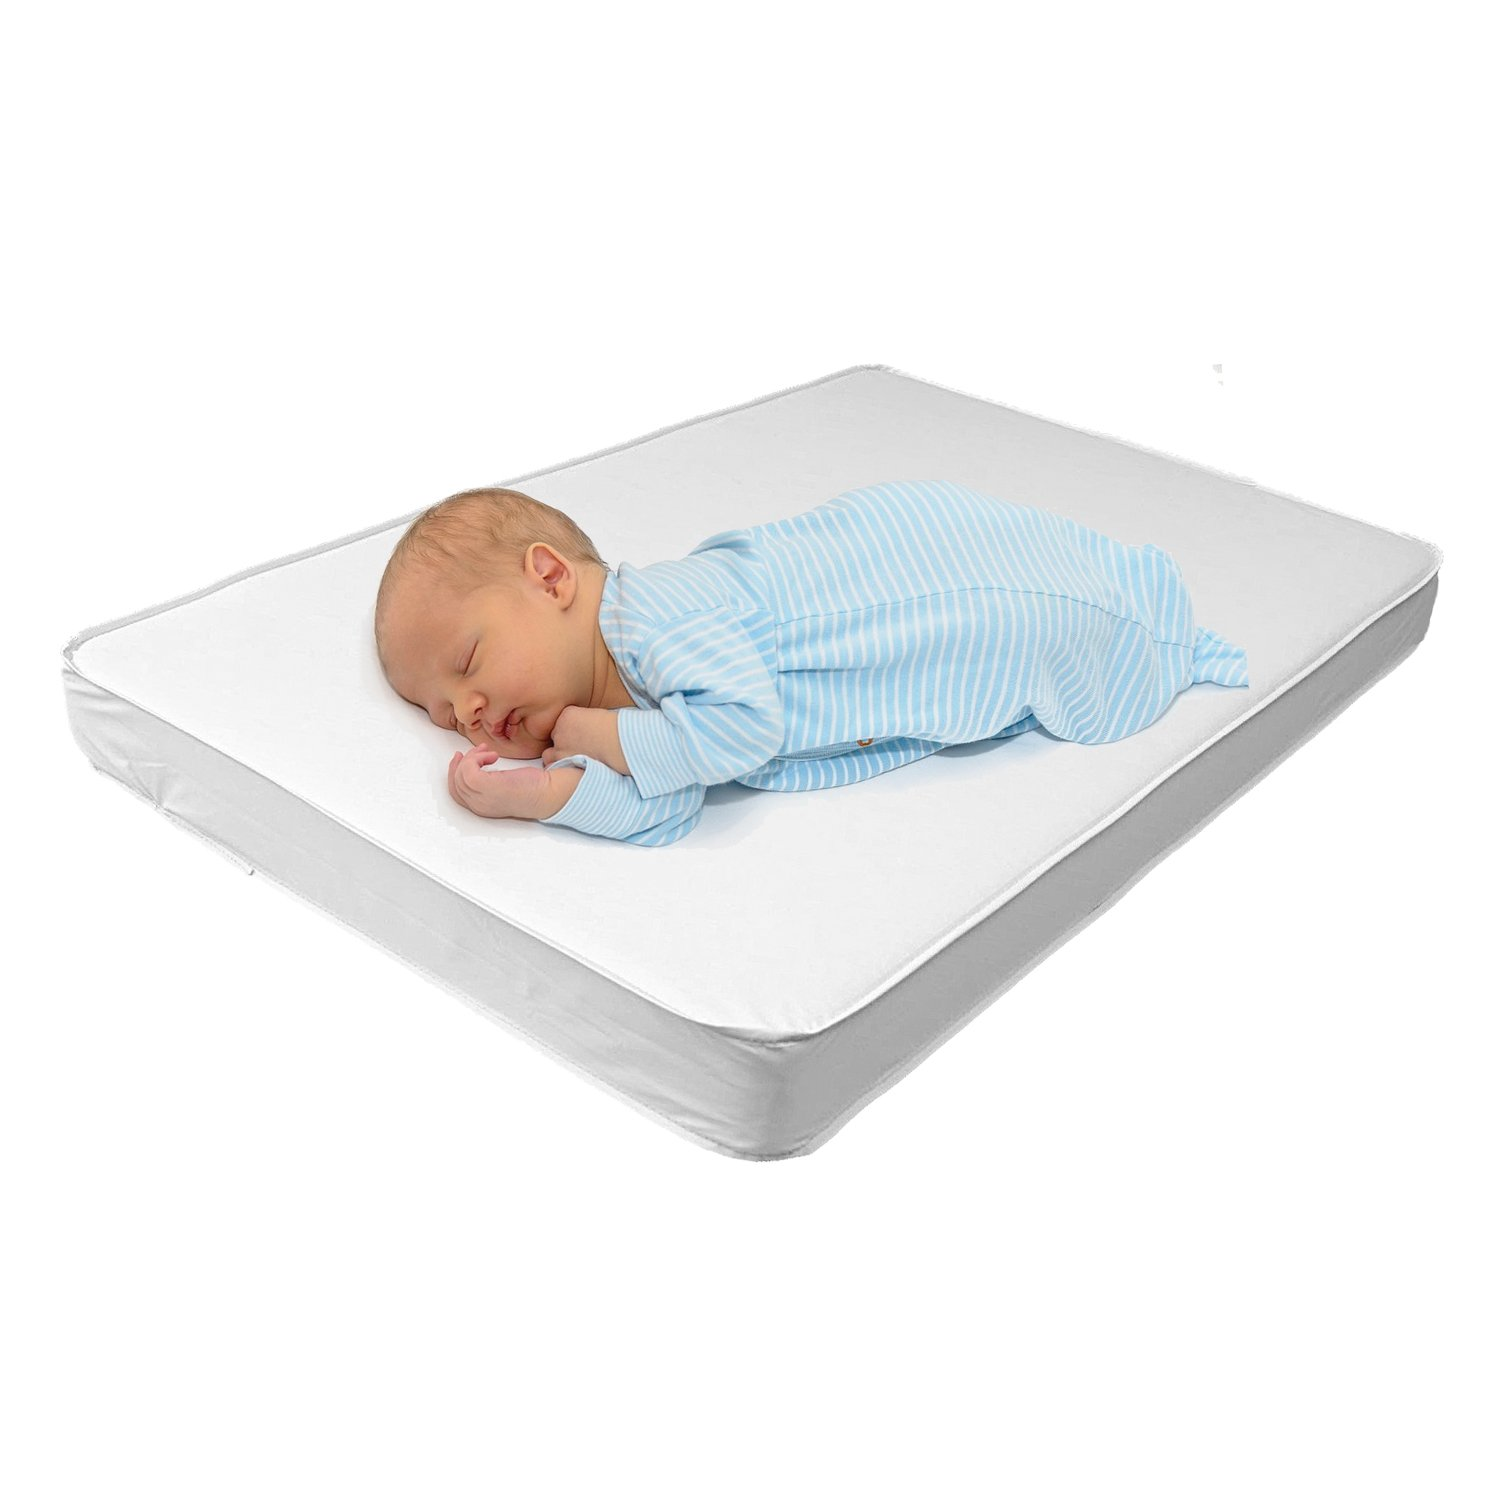 aBaby Special Sized Cradle Mattress, 18'' x 33''